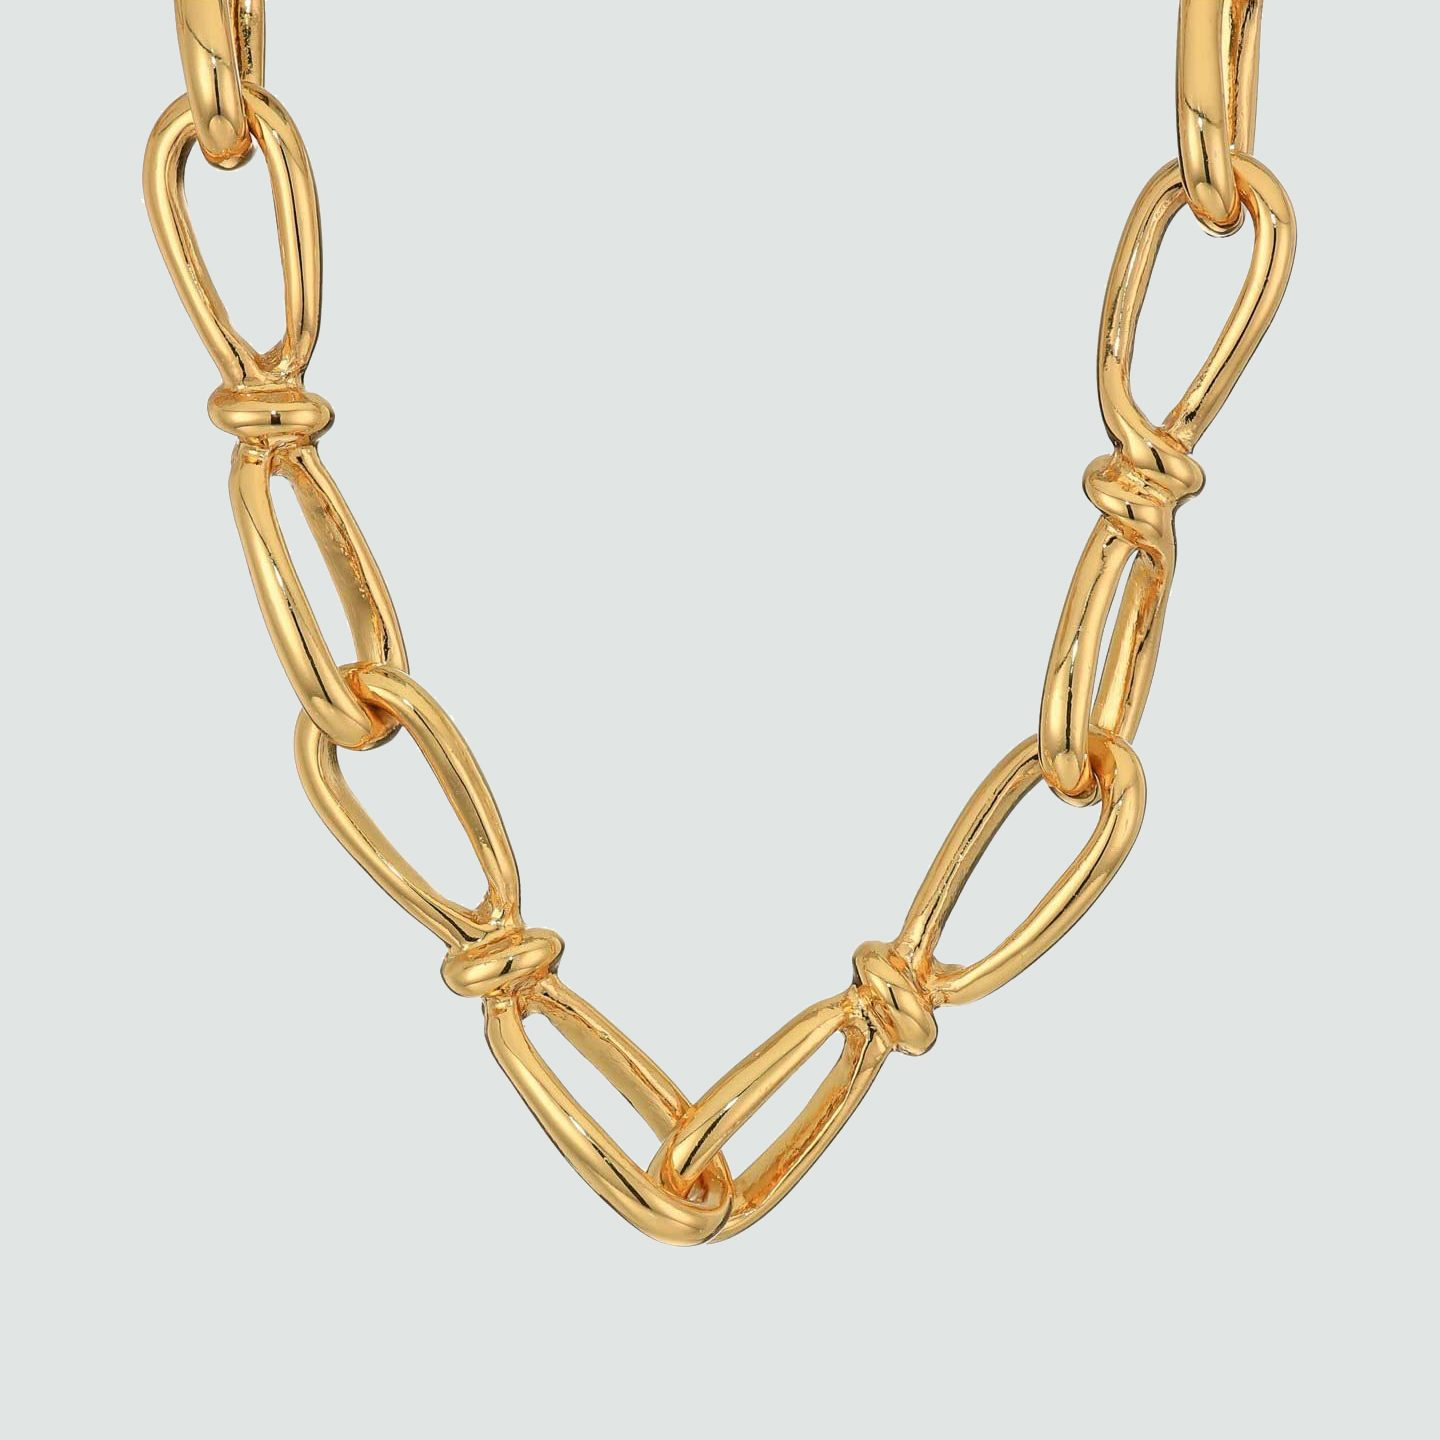 Gold-tone chains